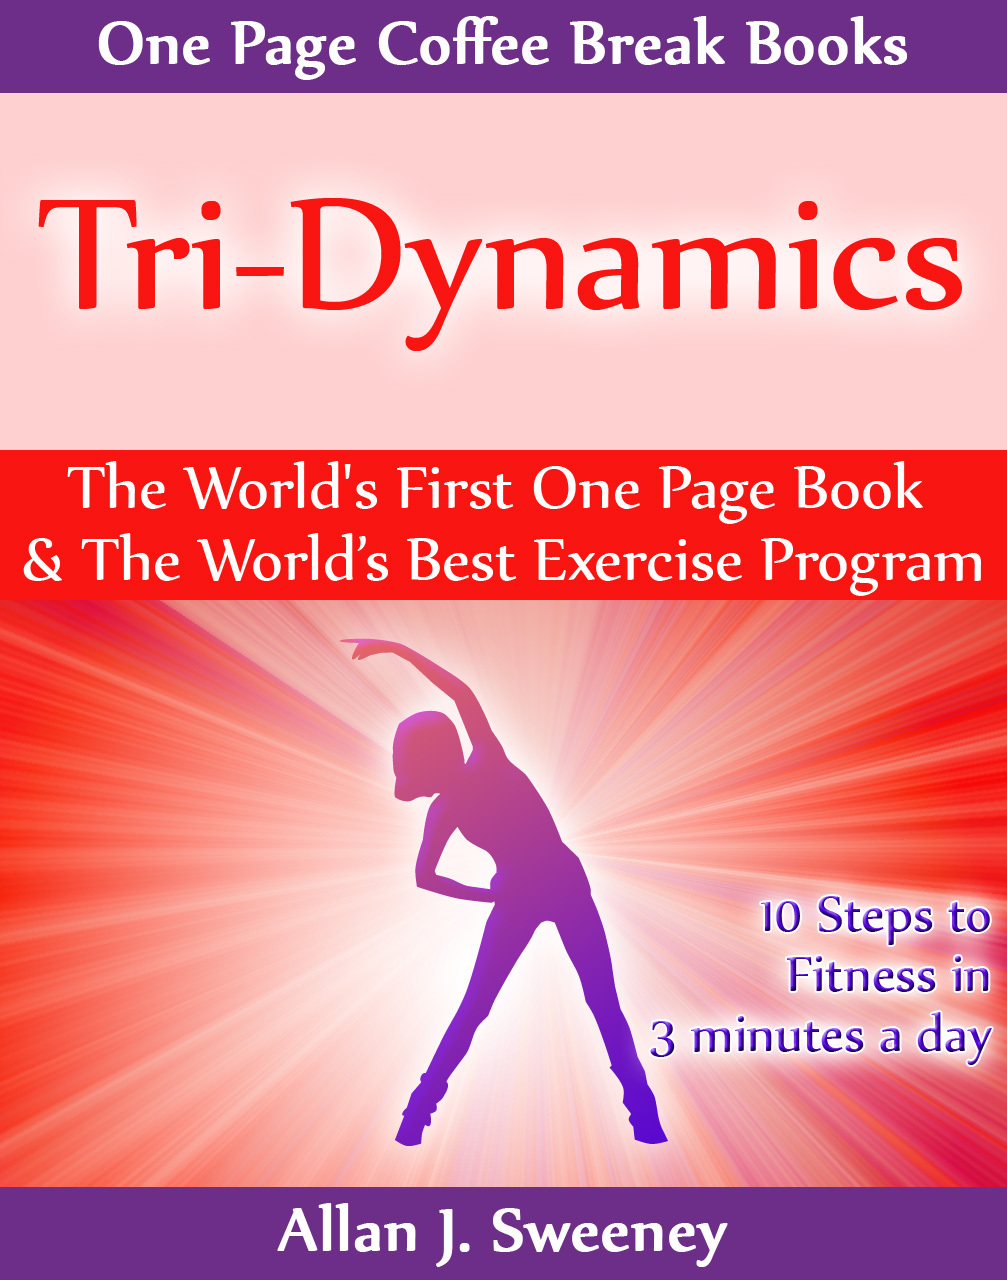 Tri-Dynamics: The World's First One Page Book & World's Best Exercise Program